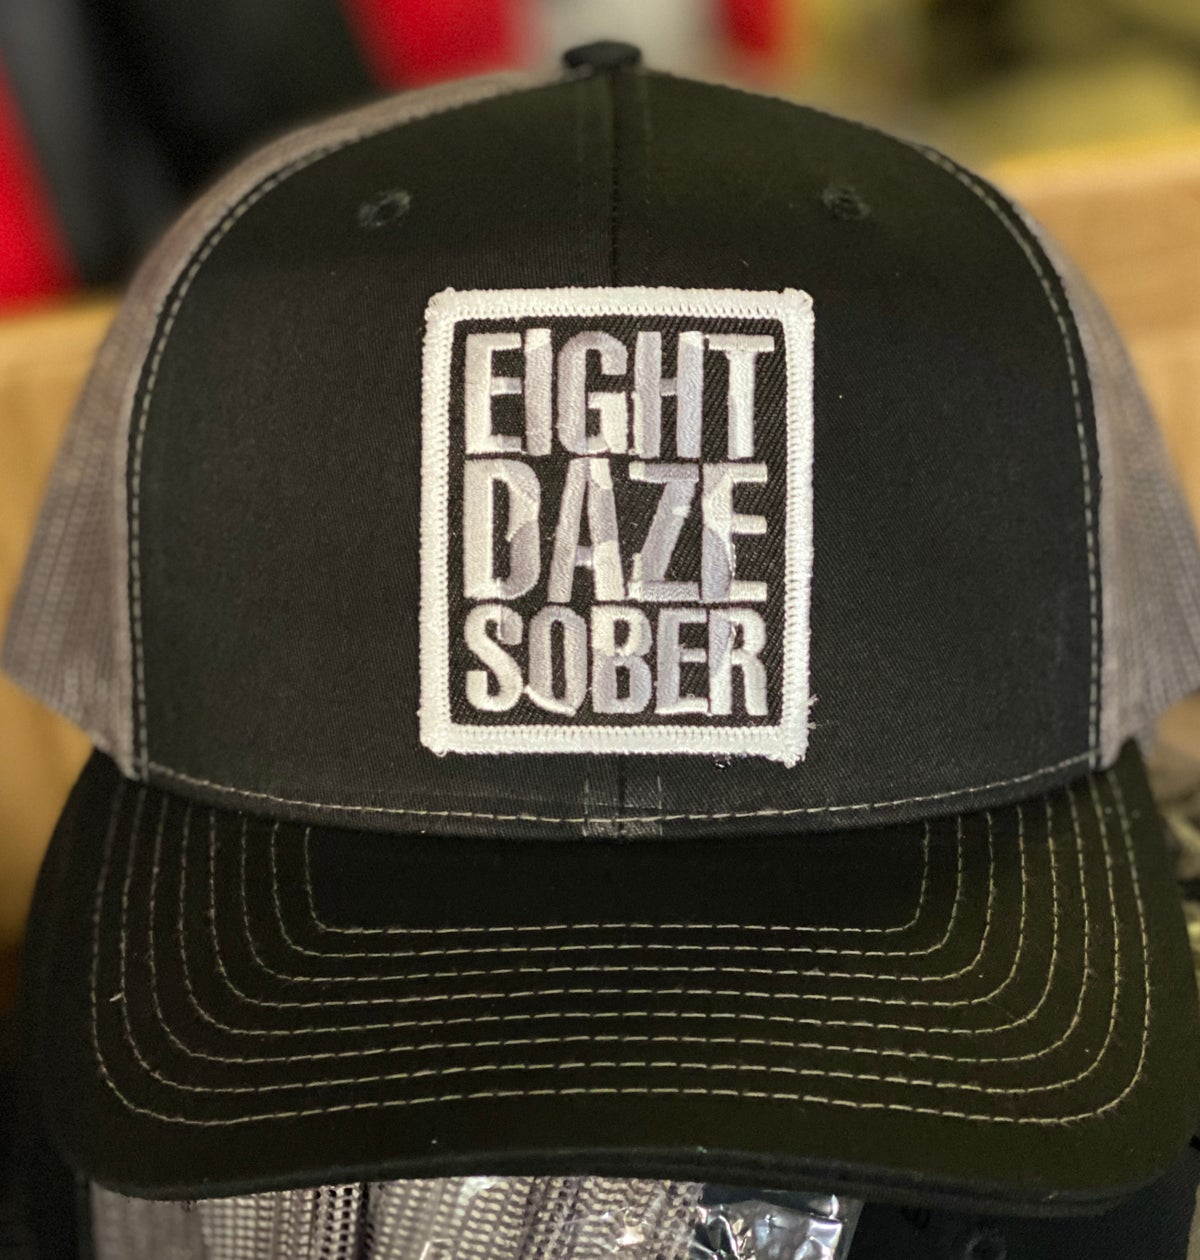 Image of 8 Daze Sober Trucker hat